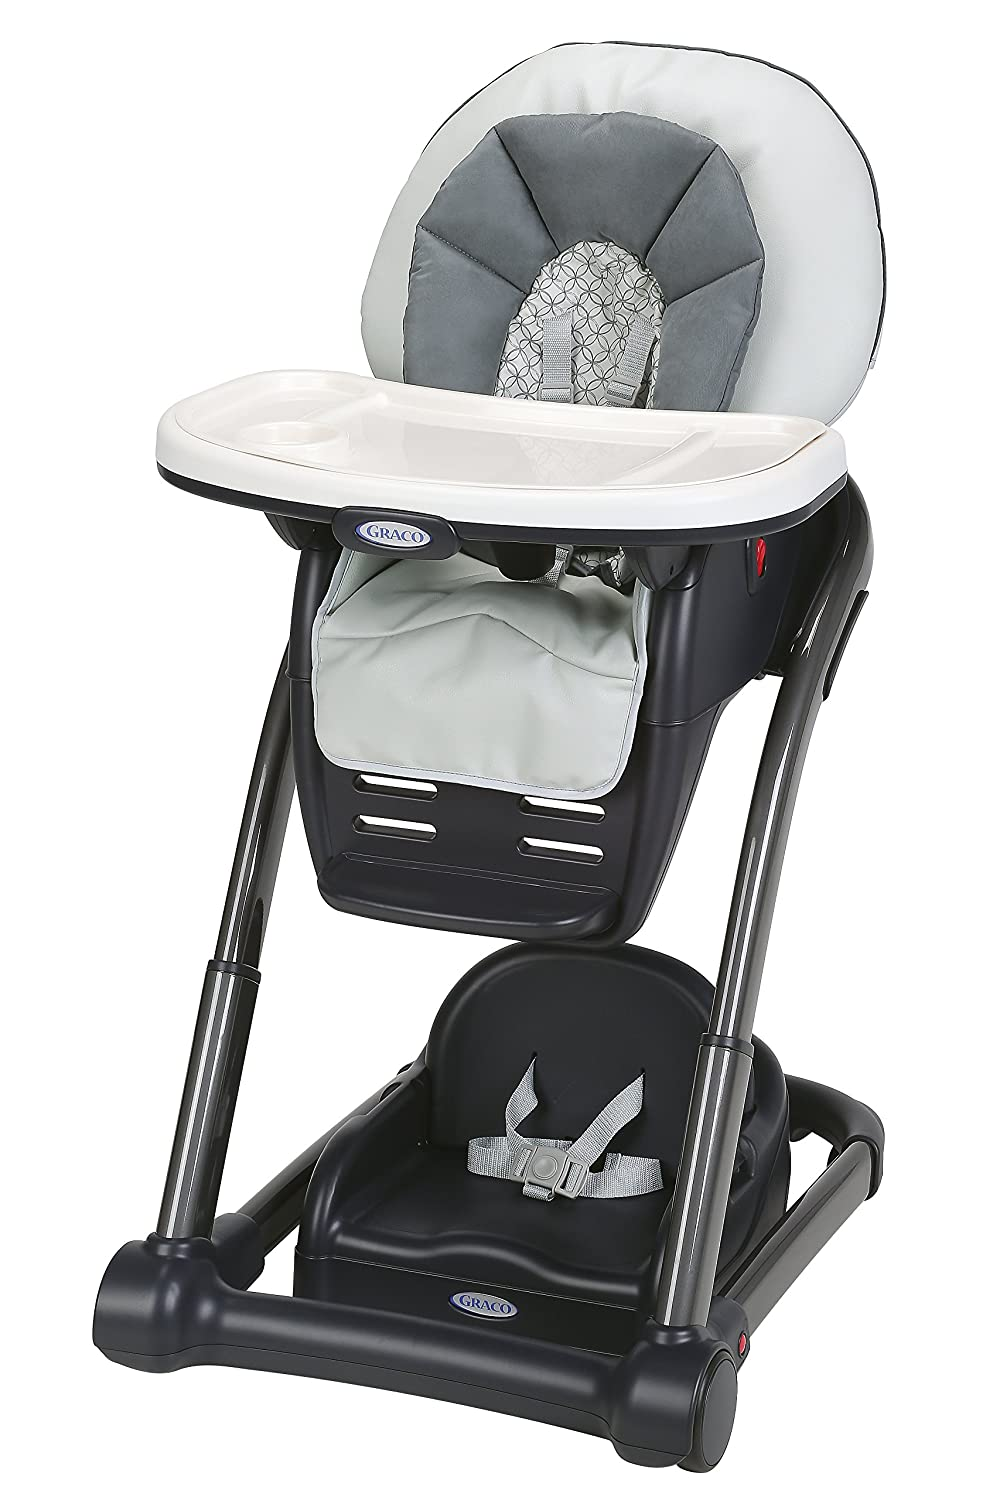 Swell Graco Blossom 6 In 1 Convertible High Chair Seating System Mckinley Alphanode Cool Chair Designs And Ideas Alphanodeonline